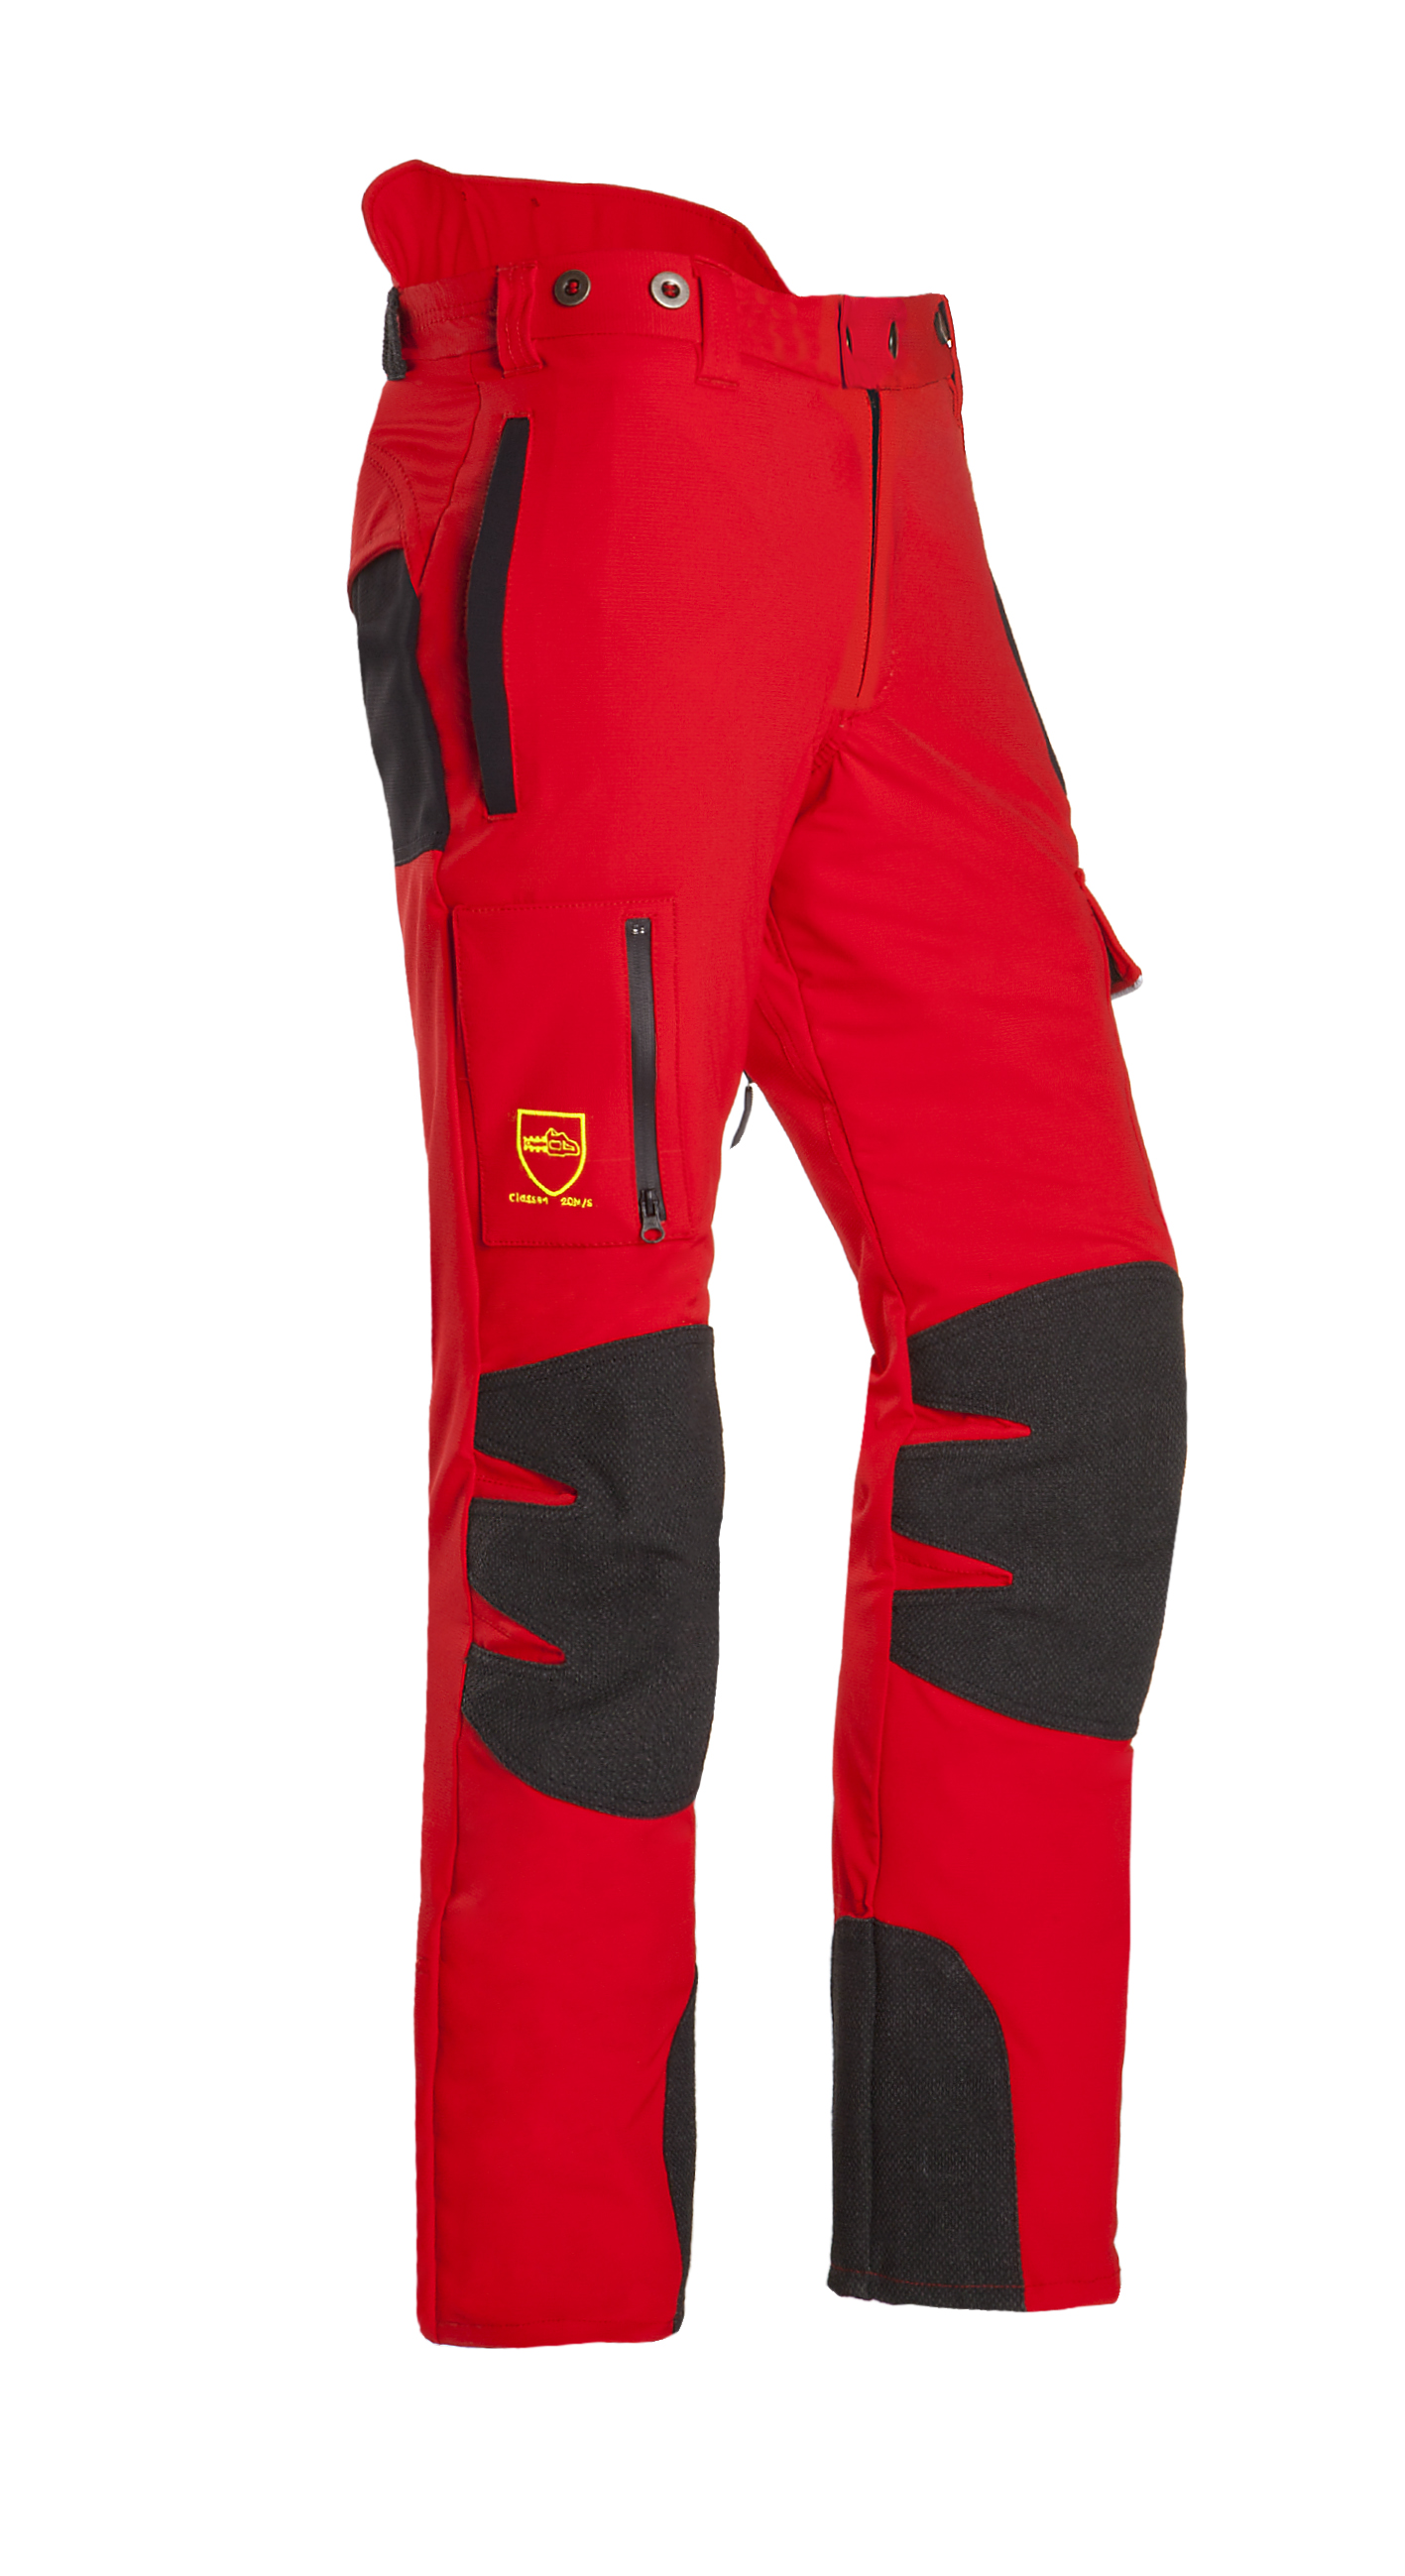 SIP PROTECTION PANTALON ANTI-COUPURE PROGRESS ARBORIST